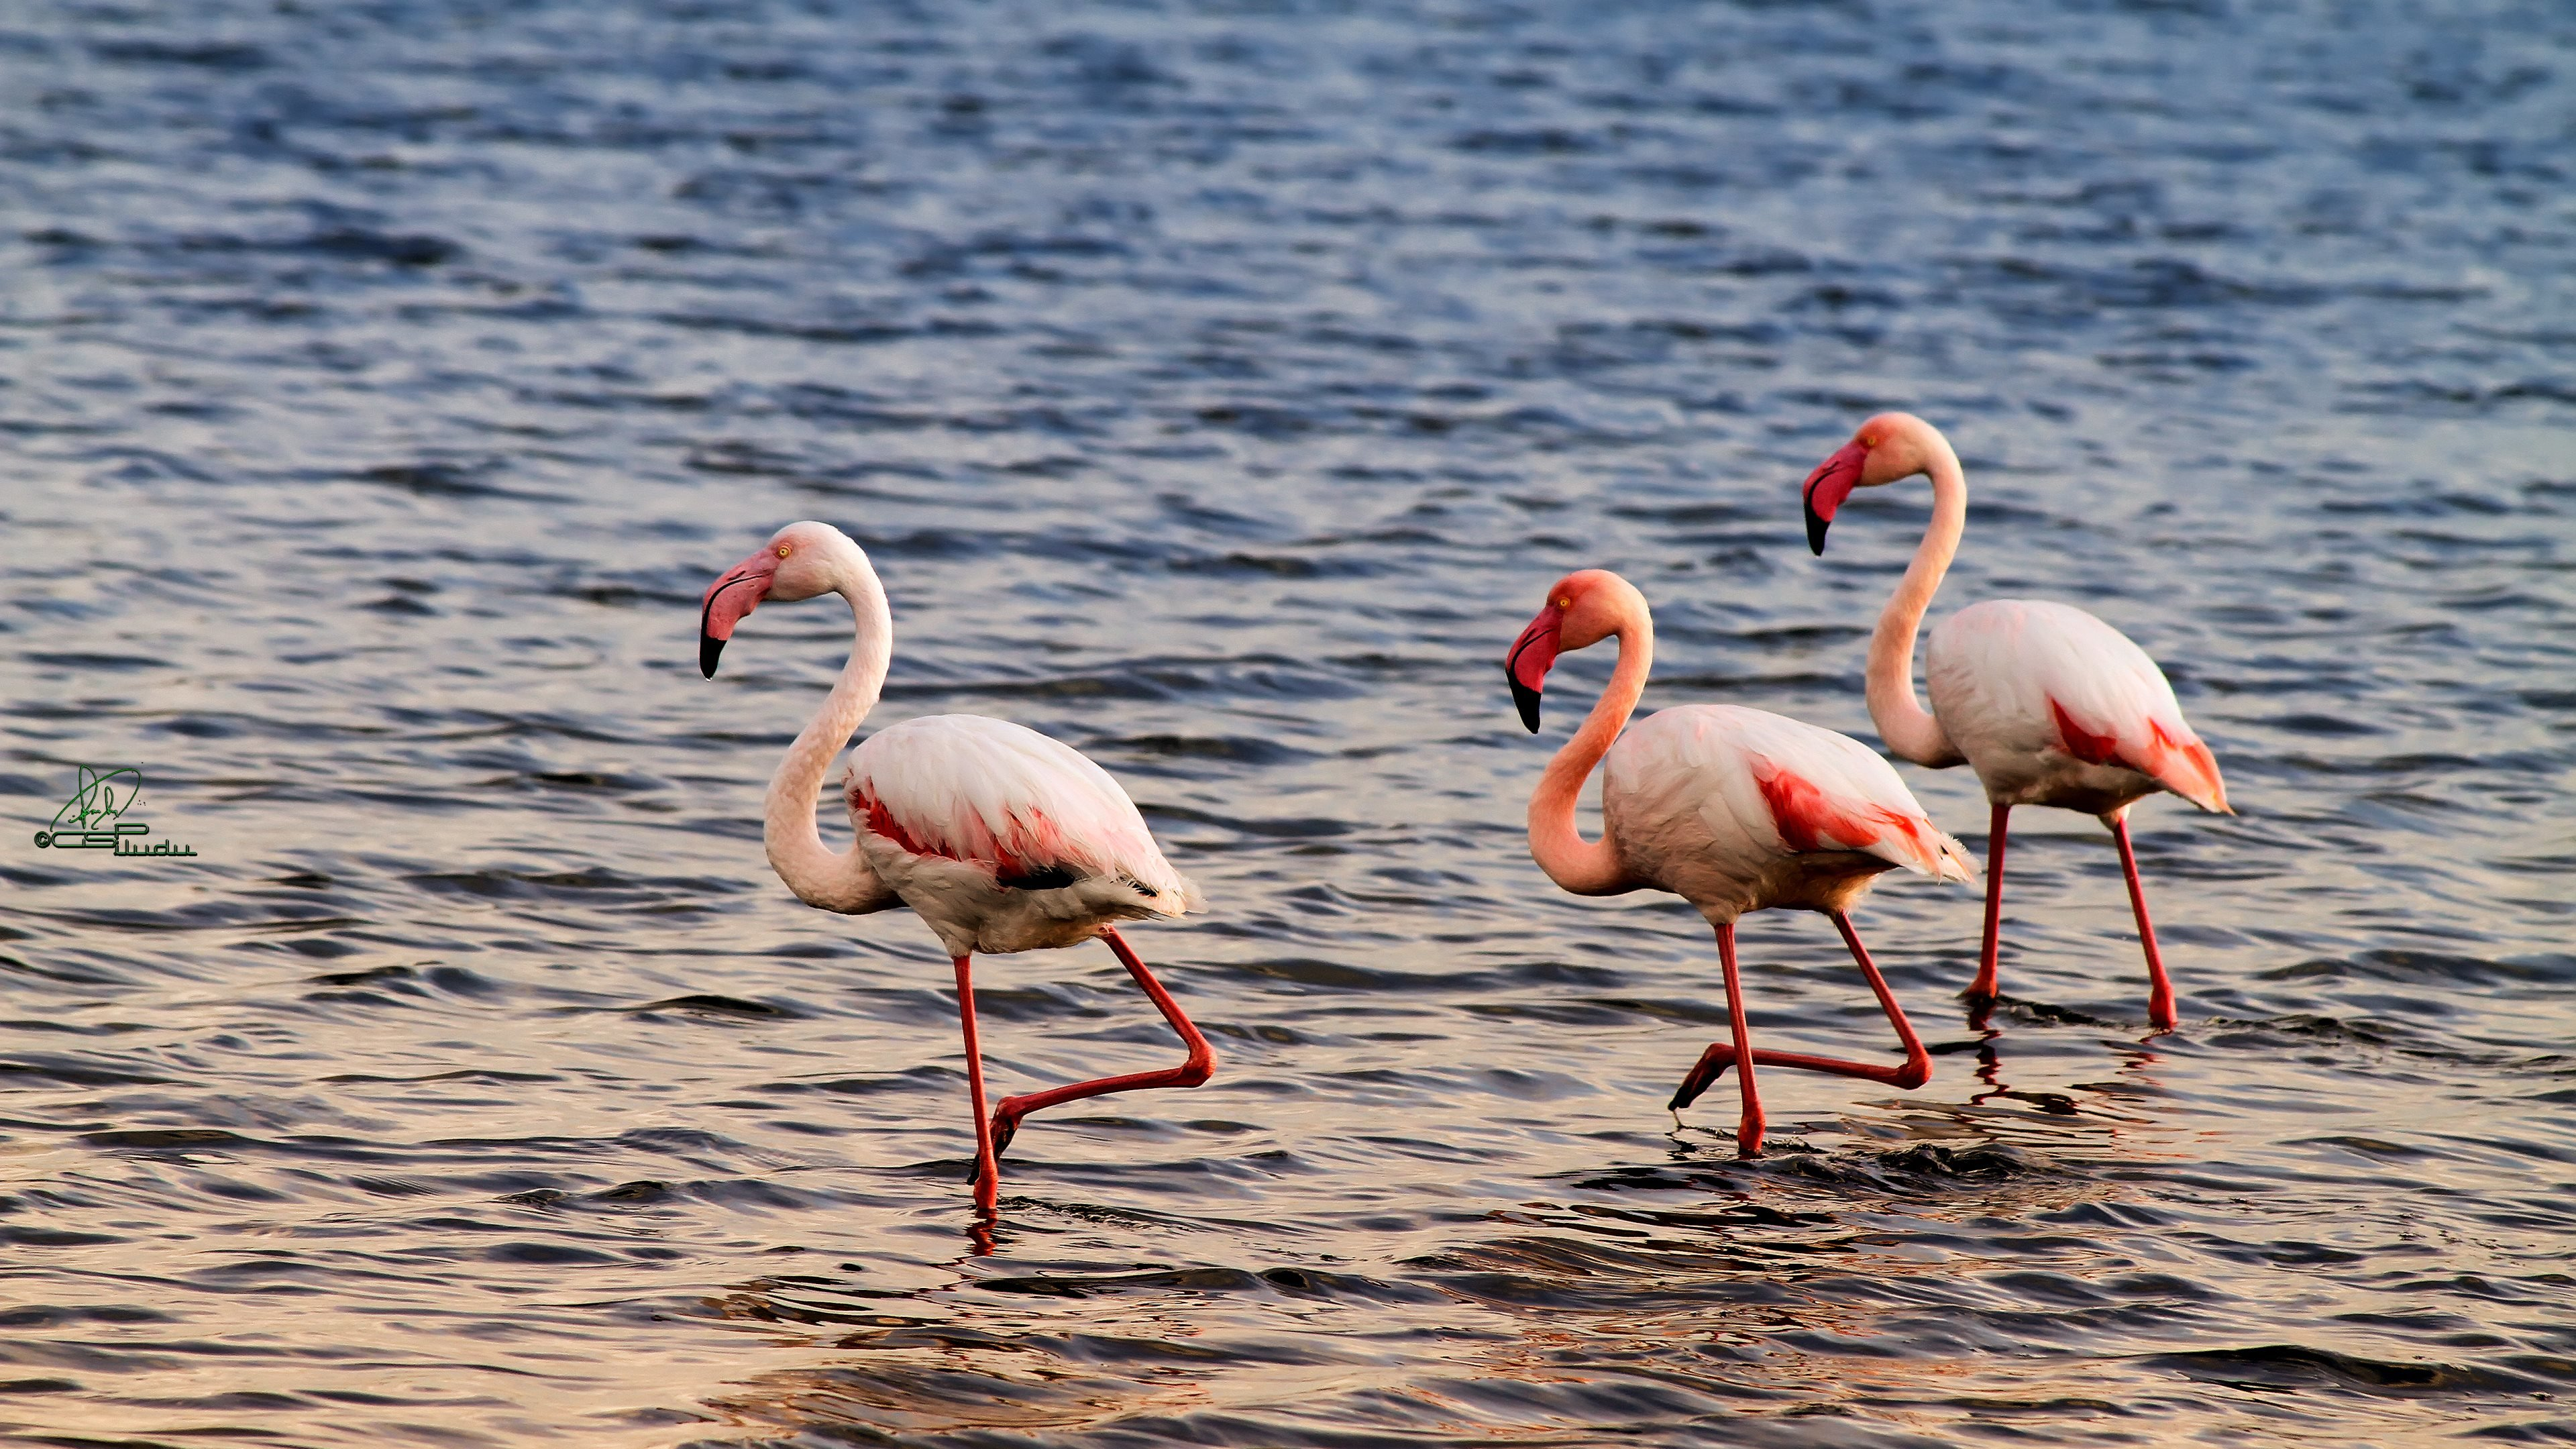 Download 4k Flamingo desktop background ID:66625 for free